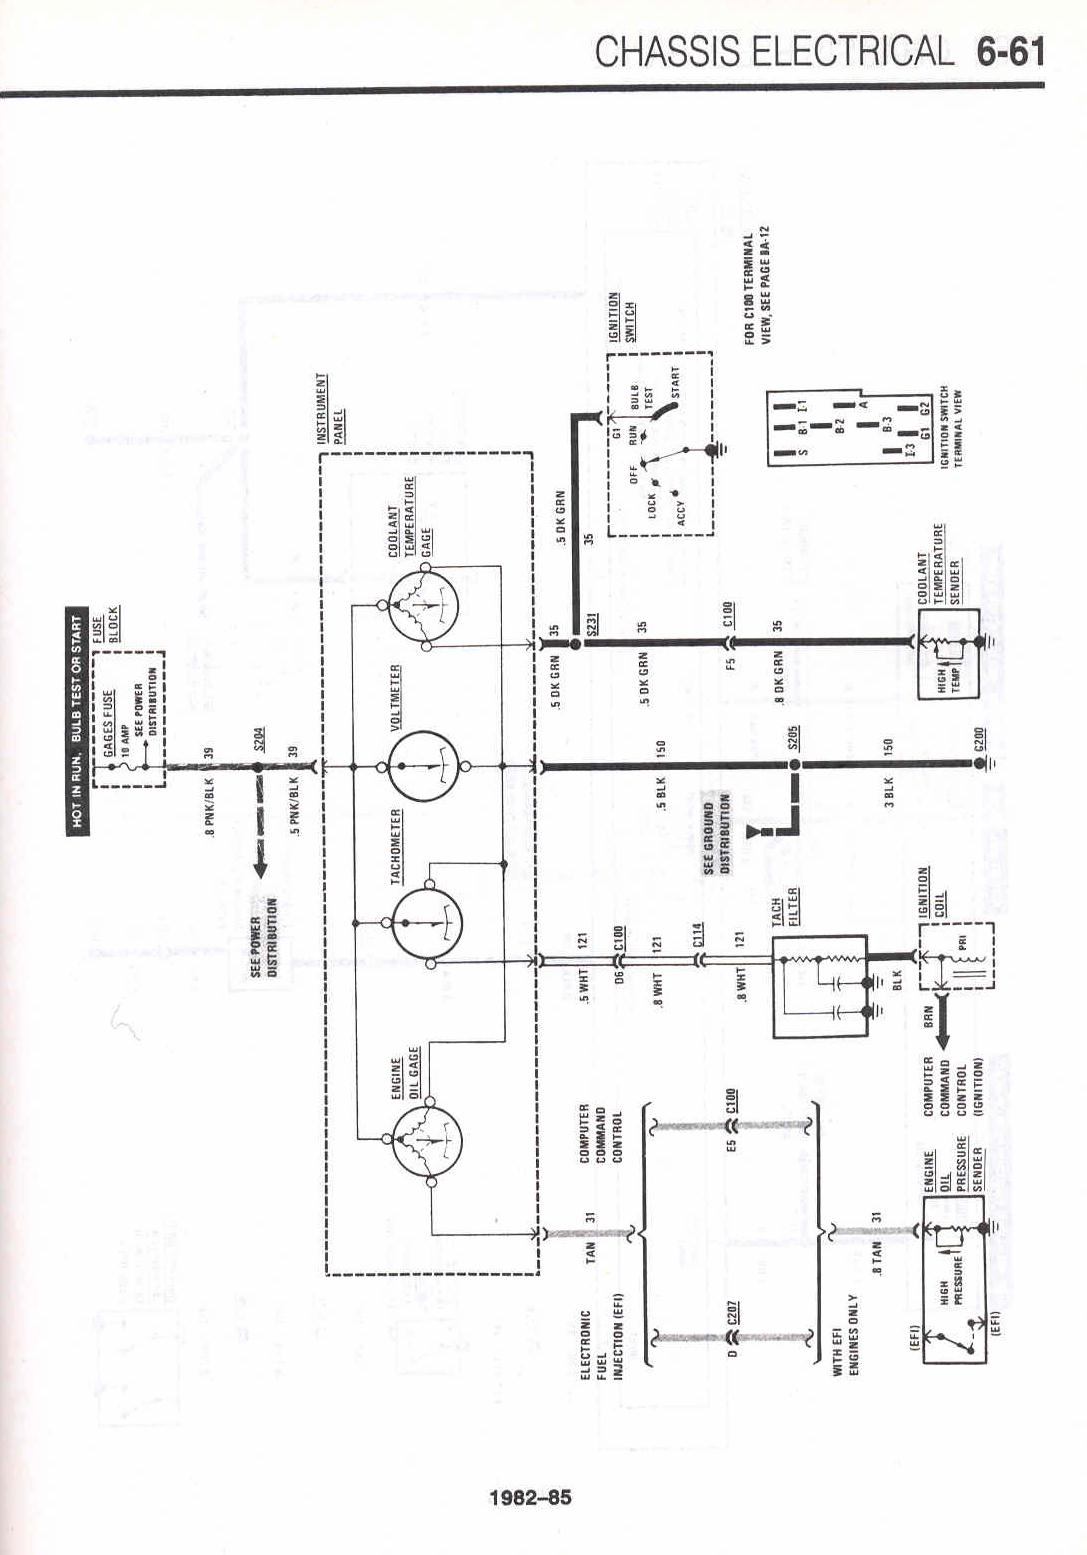 Car Info 2000 Firebird Fuse Diagram Oil Pressure Tach Coolant Temp